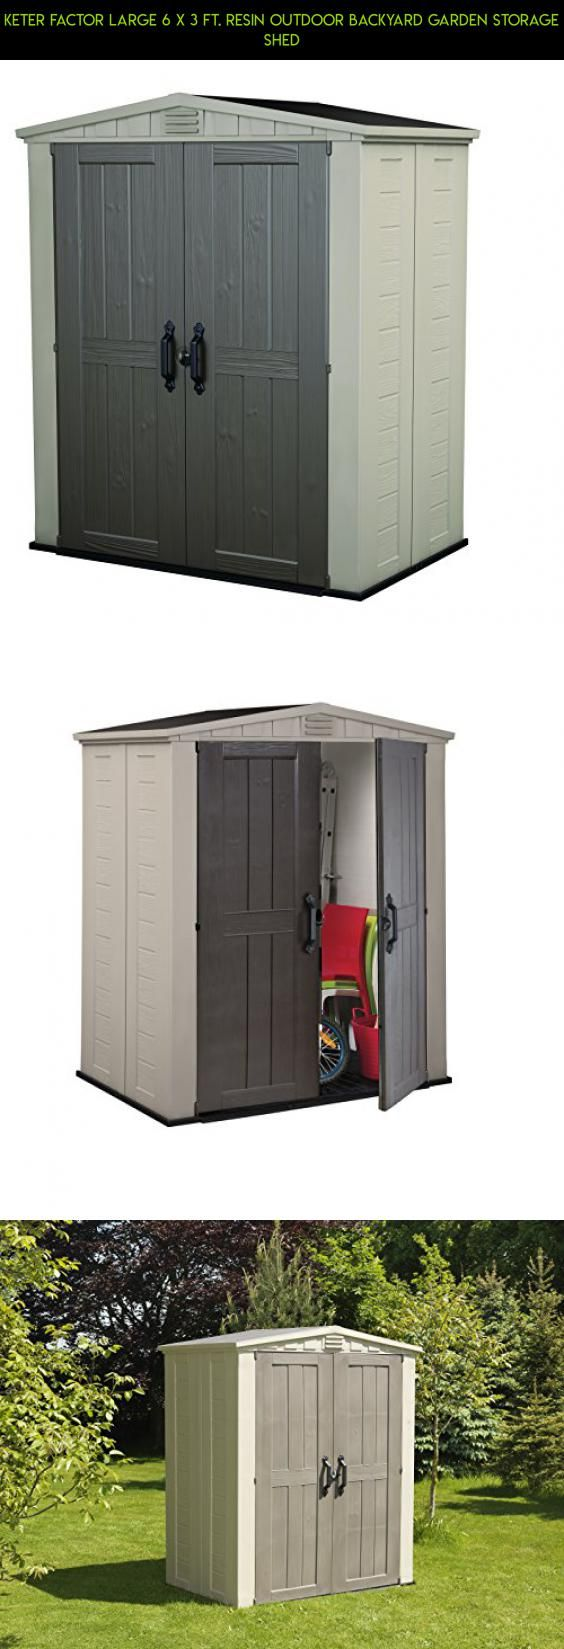 keter factor large 6 x 3 ft resin outdoor backyard garden storage shed storage - Garden Sheds 6 X 3